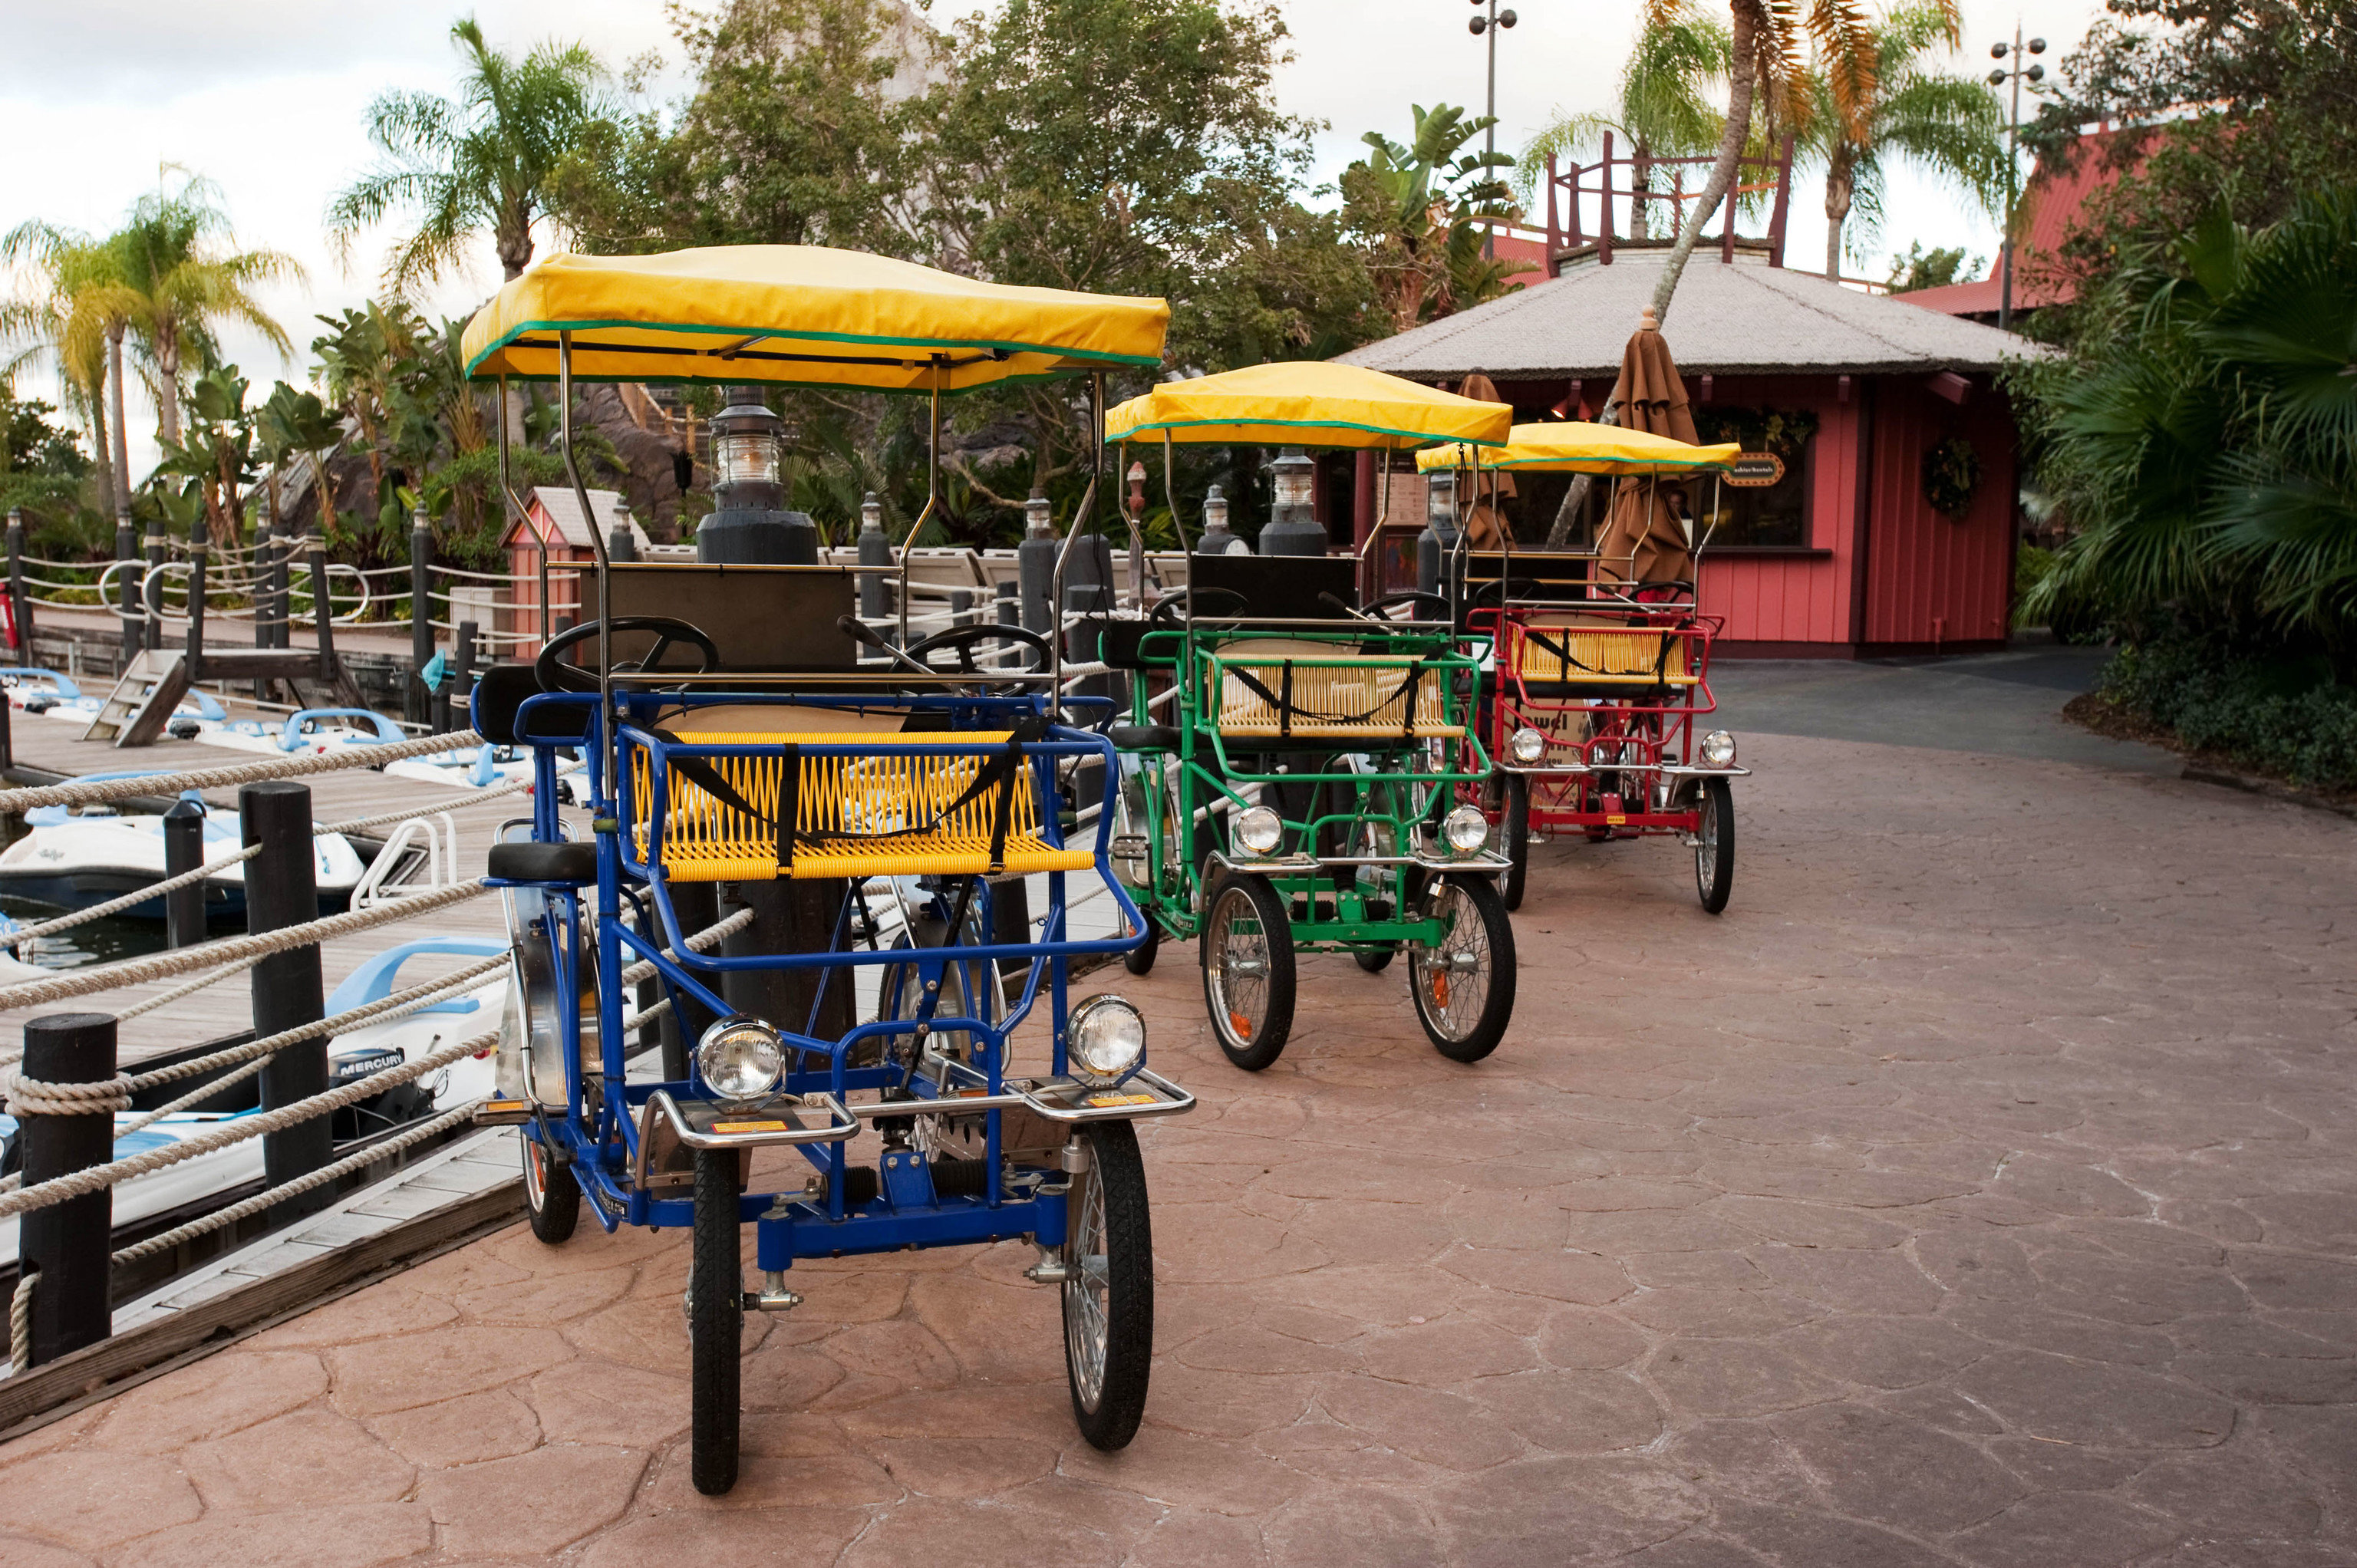 tree ground vehicle cart public space pulling carriage drawn food